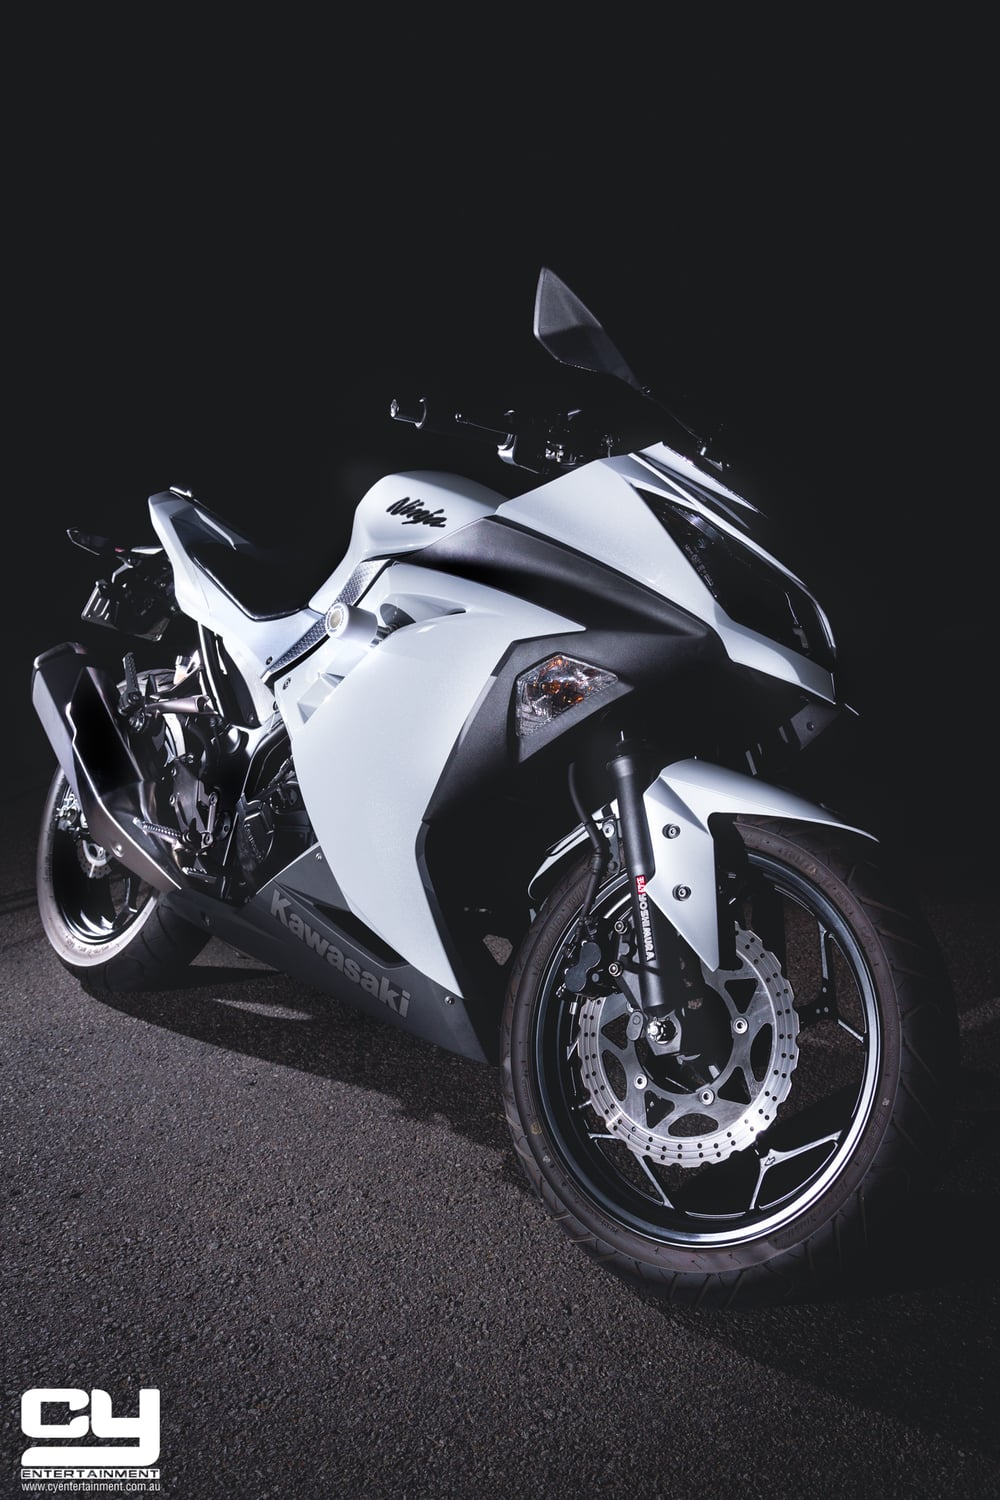 C.Y Entertainment - Ninja 300-9.jpg